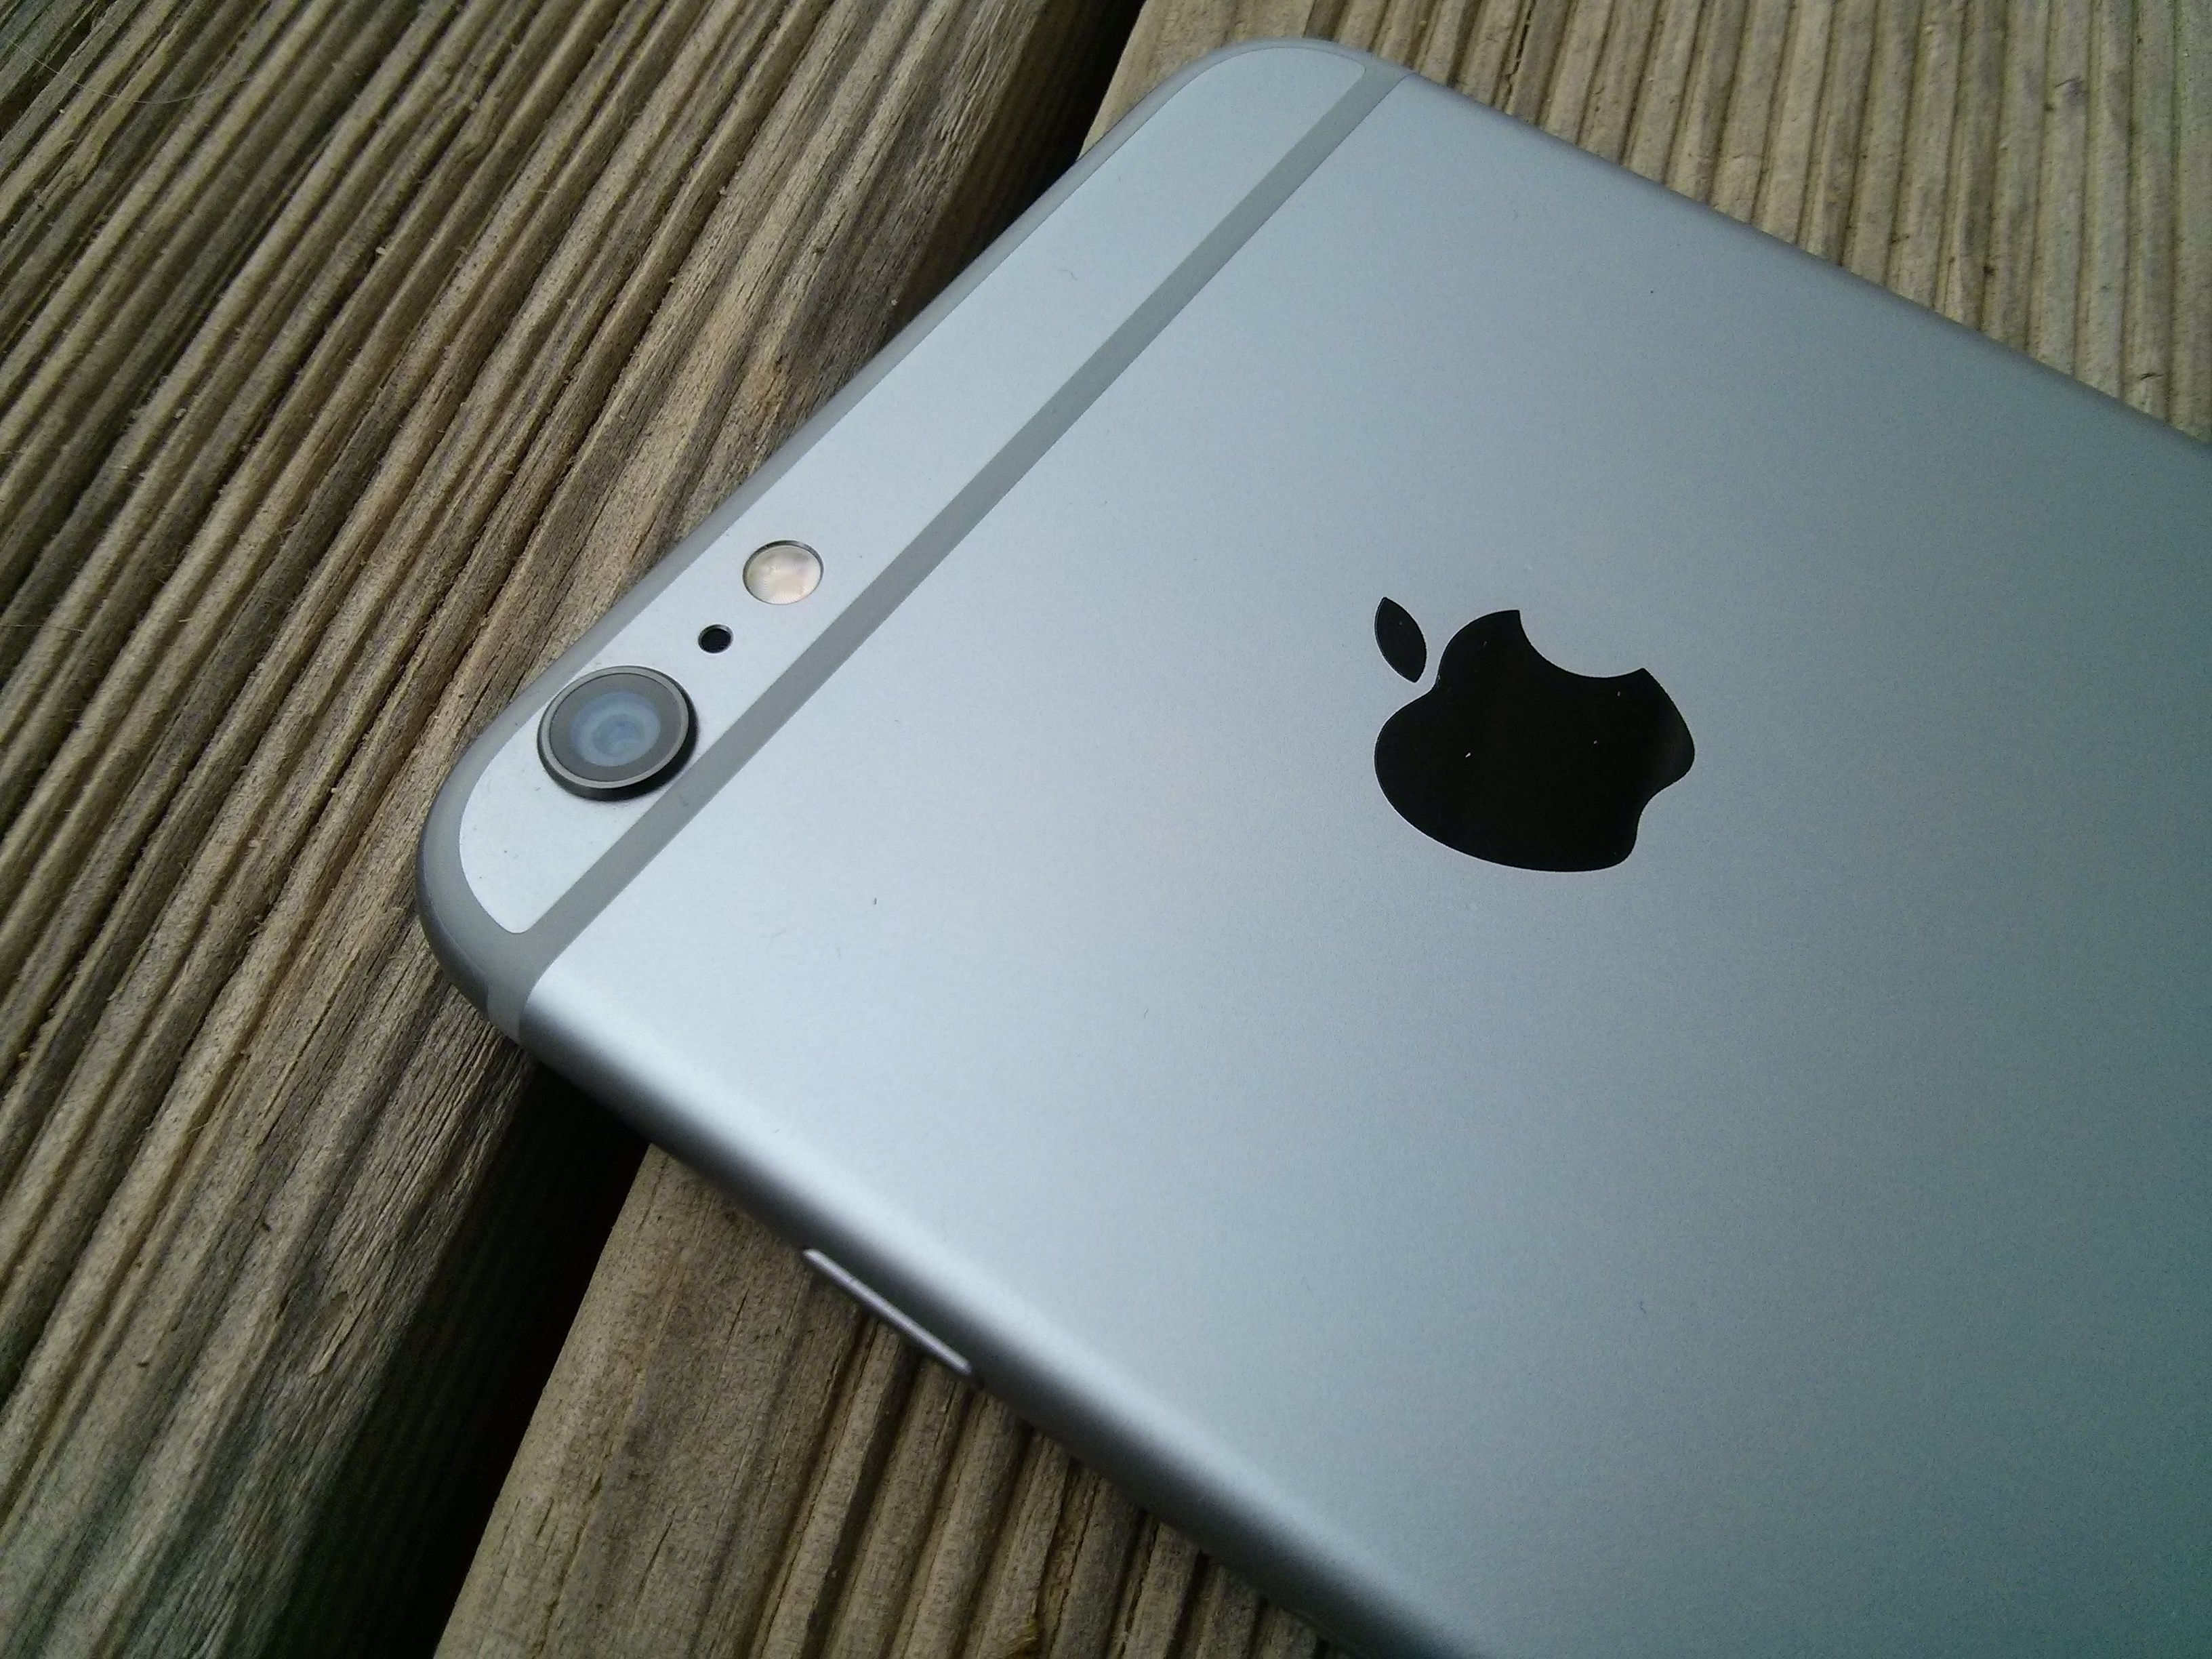 Sony Gagne 20 Dollars Sur Chaque Iphone 6